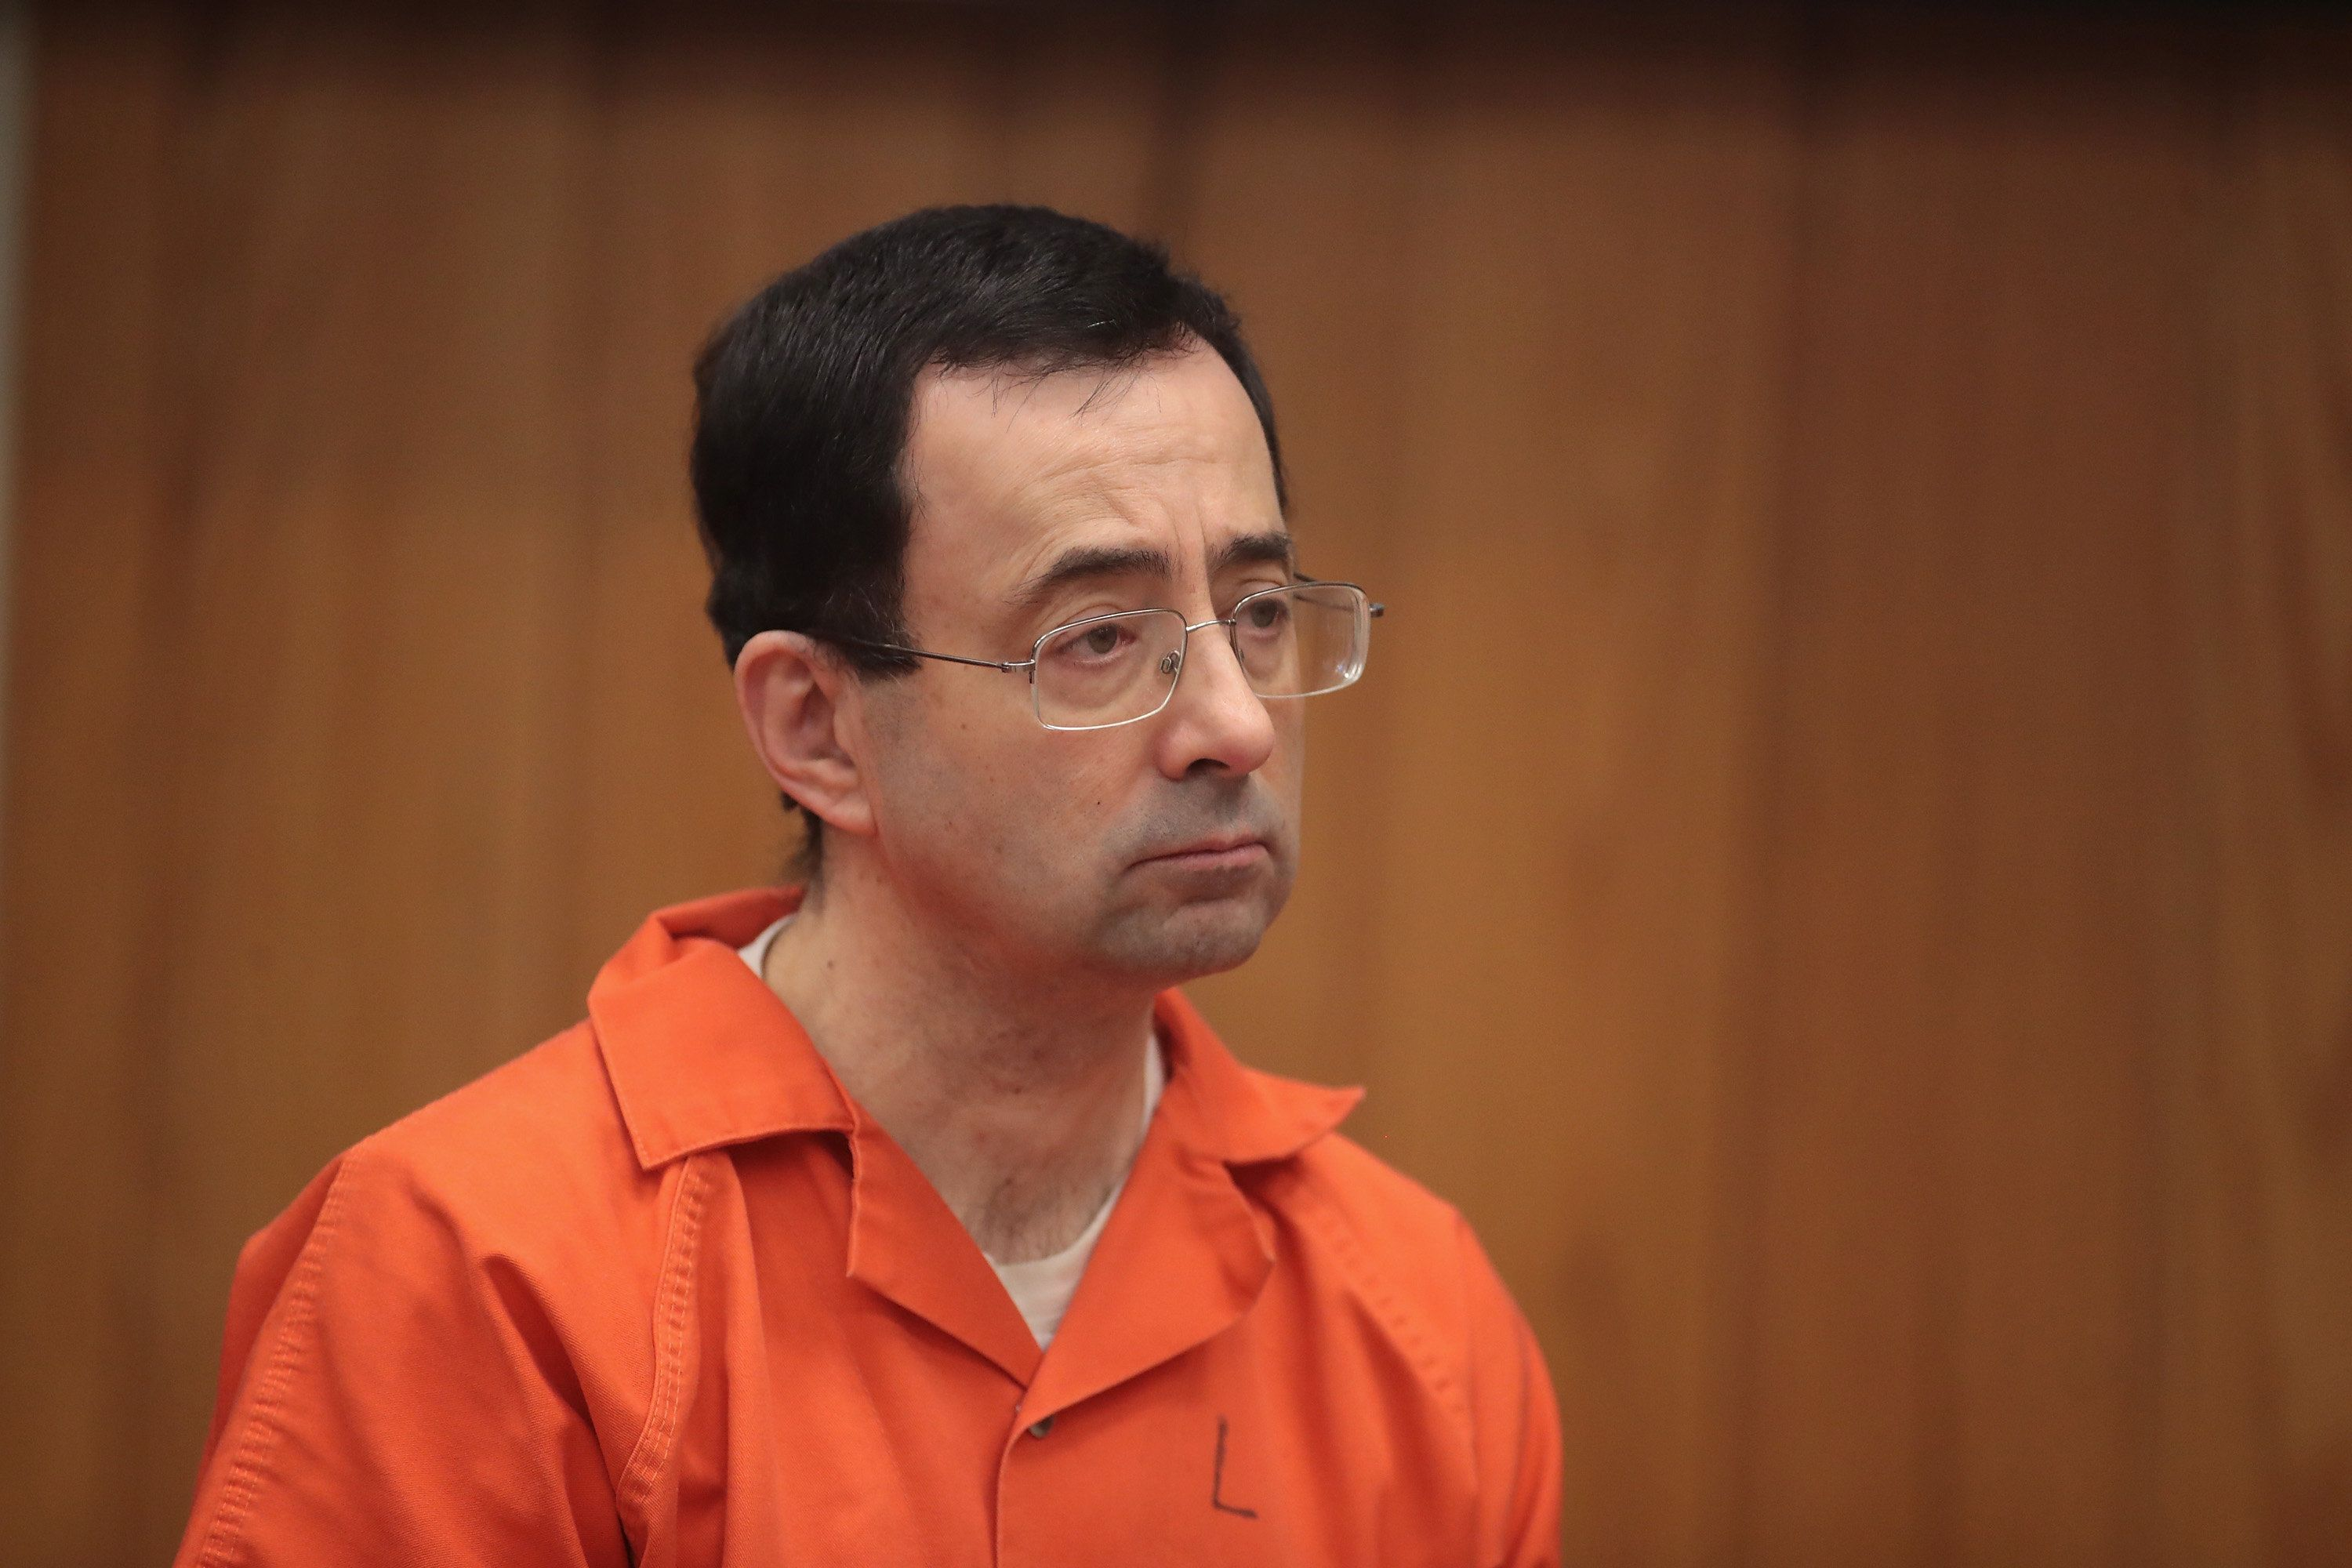 Michigan State to pay out at least $500 million to Nassar victims